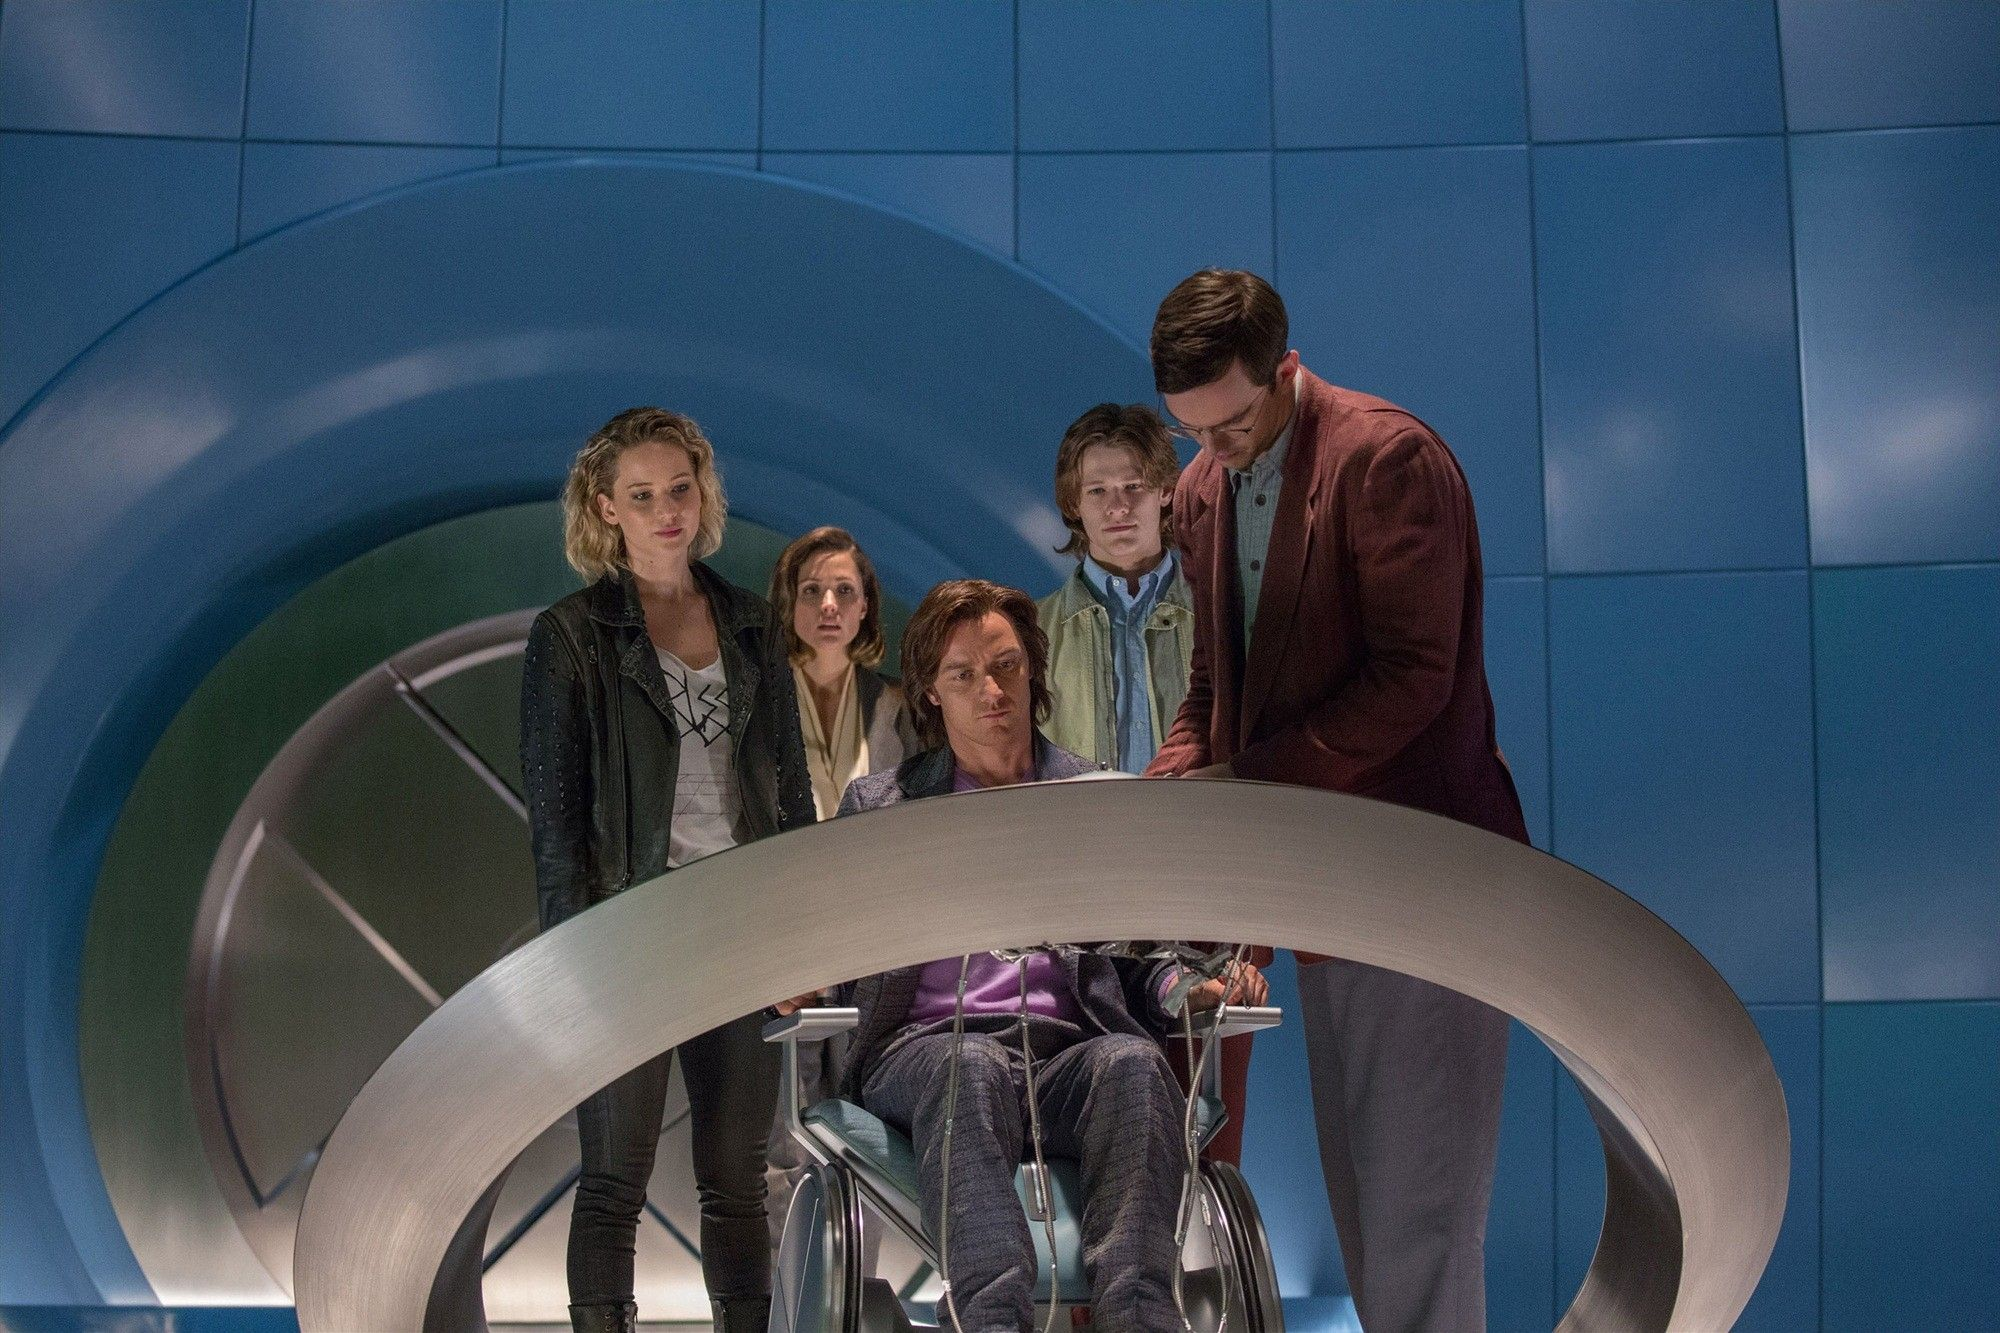 Jennifer Lawrence, James McAvoy and Nicholas Hoult in 20th Century Fox's X-Men: Apocalypse (2016)